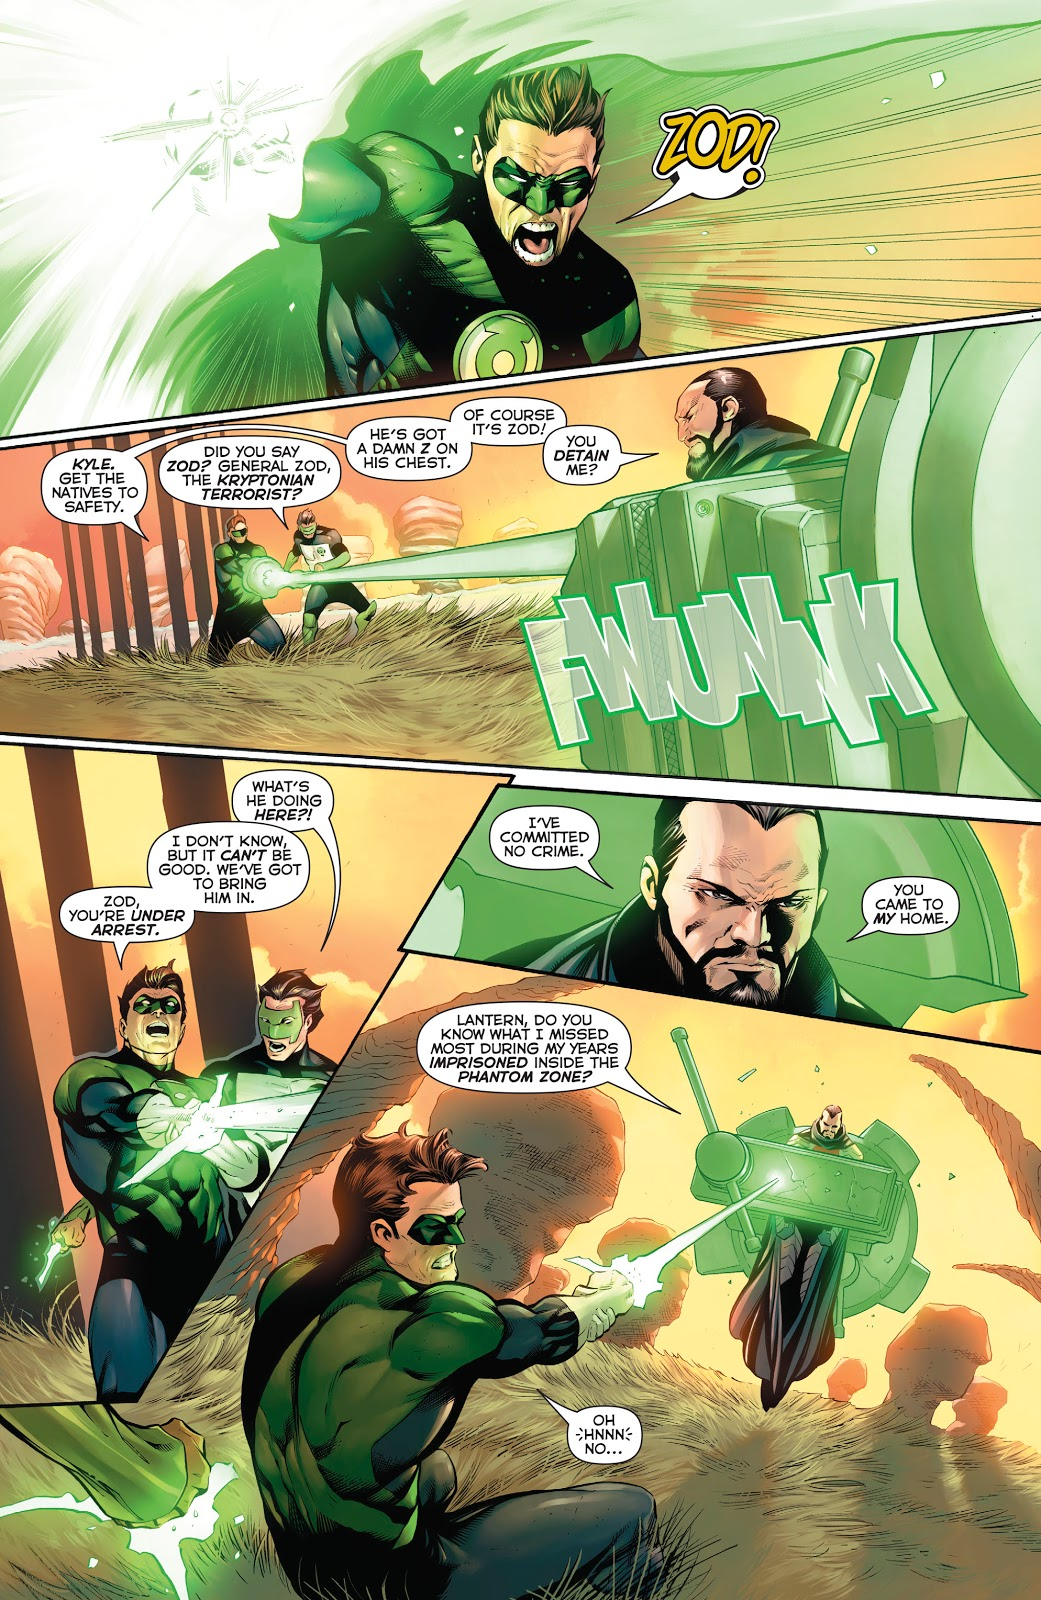 Hal Jordan and the Green Lantern Corps V6 Zod's Law review